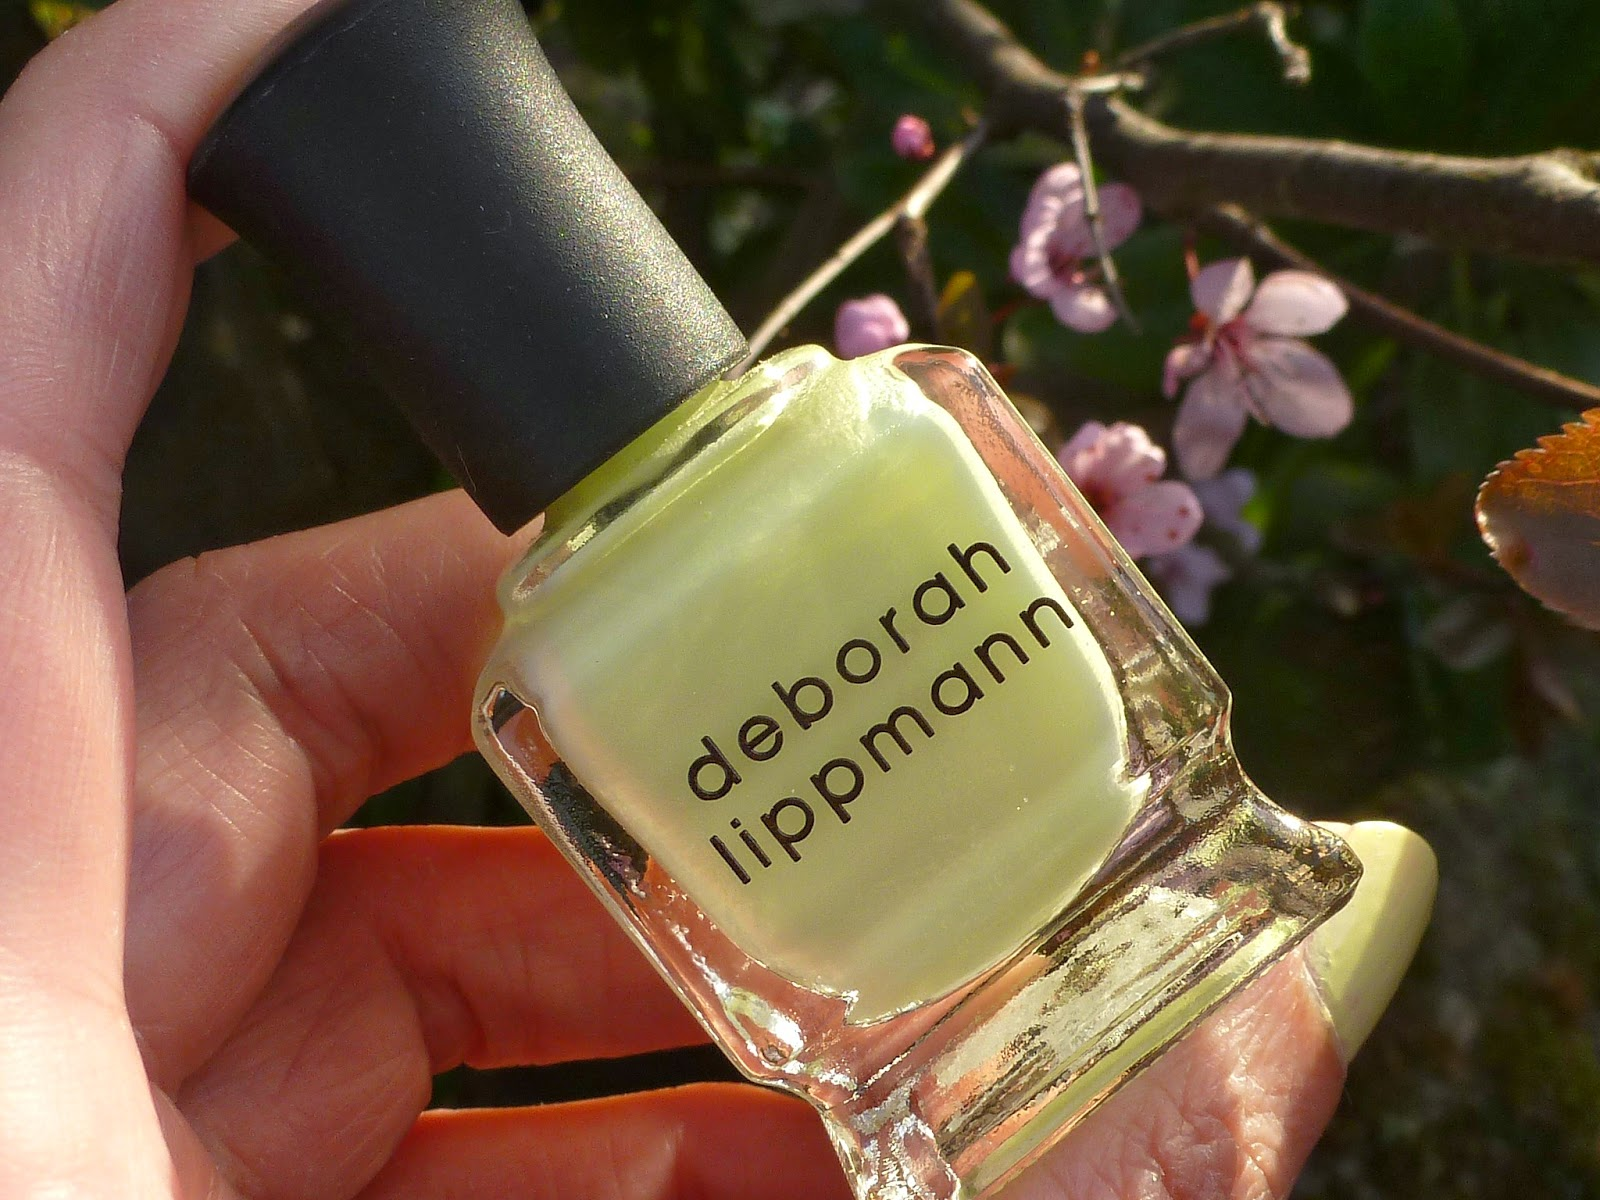 A picture of Deborah Lippmann - Spring Buds